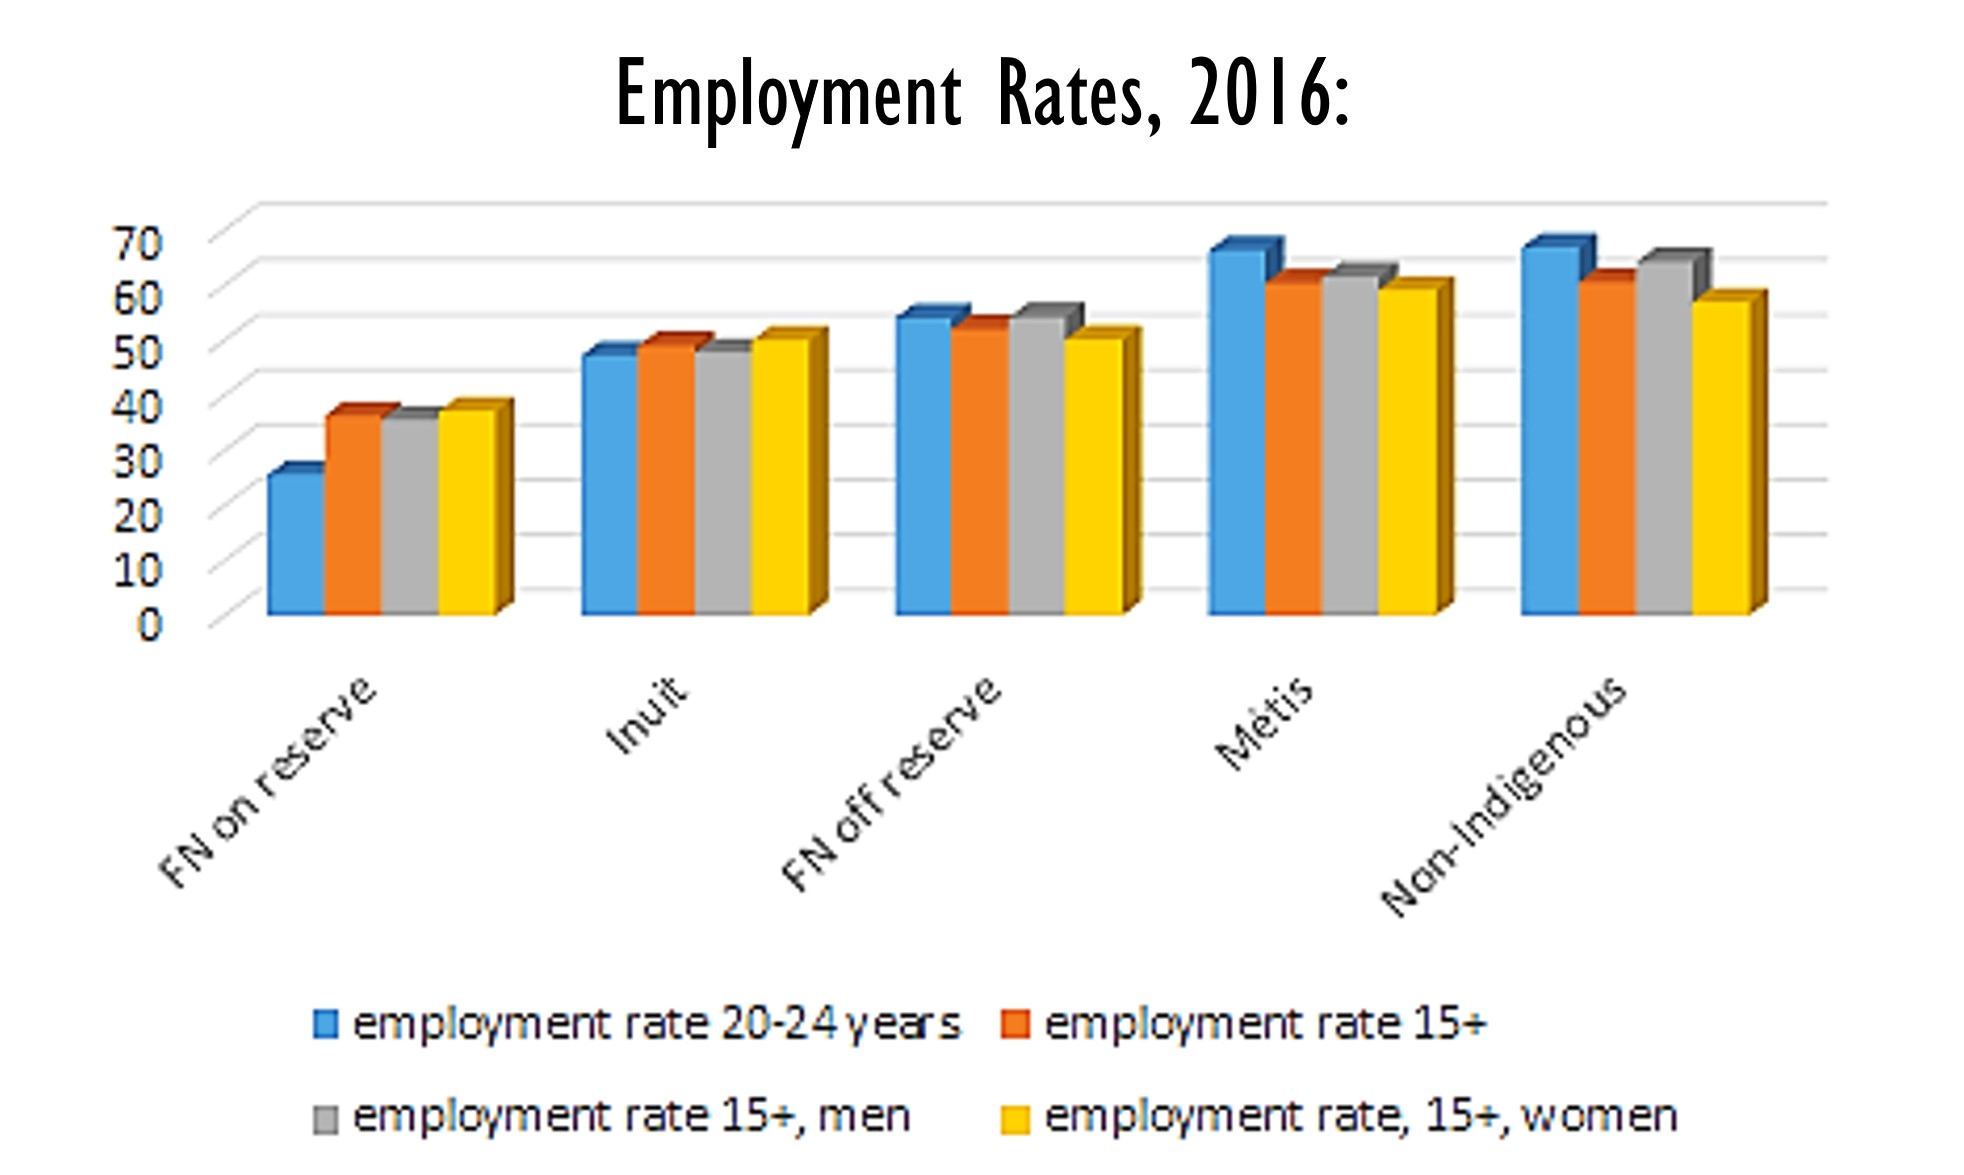 Employment Rates 2016 Chart. Credits to NIEDB. Source: Annex A, Tables 1 and 37, NIEDB (2019) [140]